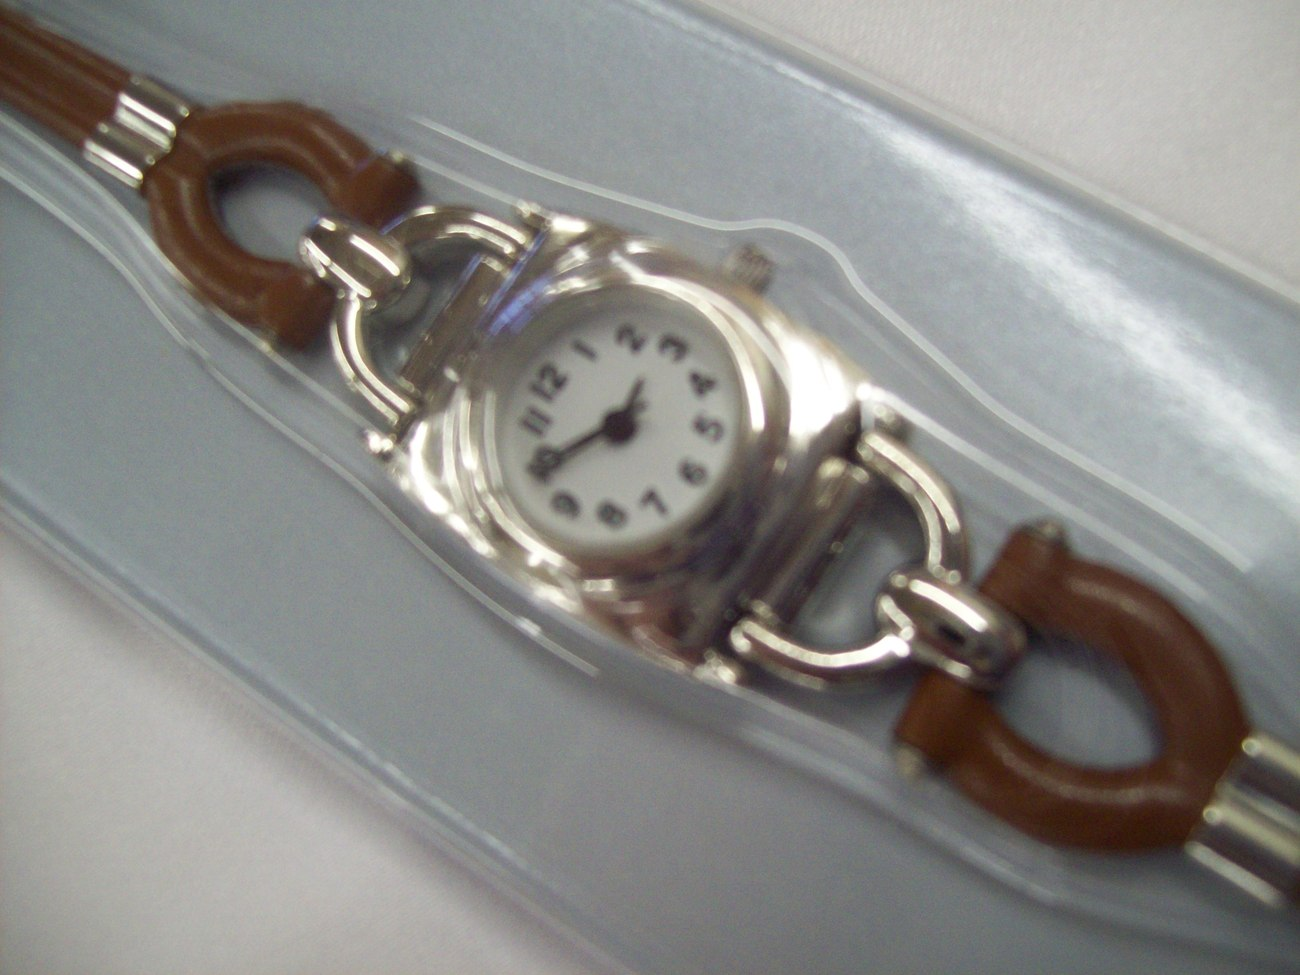 Primary image for AVON Wrist Watch with Equestrian Style Band NIB Brown and Silver Chrome in Color